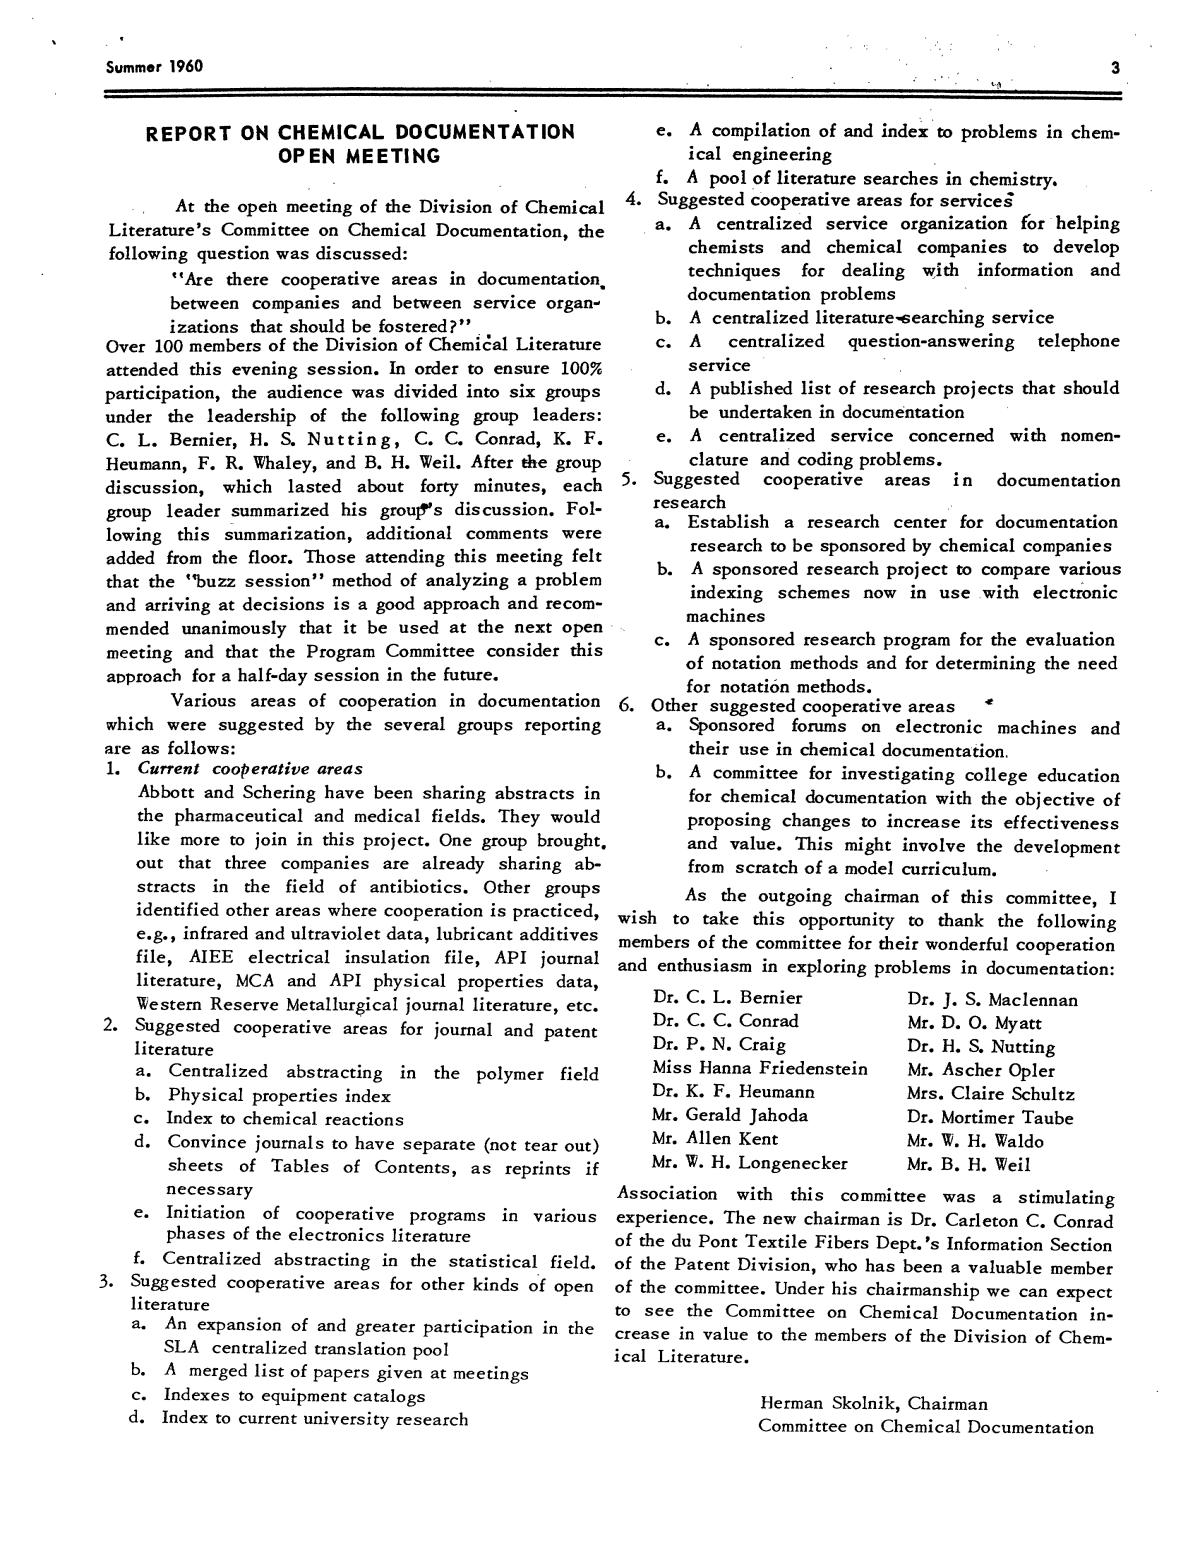 Chemical Literature, Volume 12, Number 2, Summer 1960                                                                                                      3